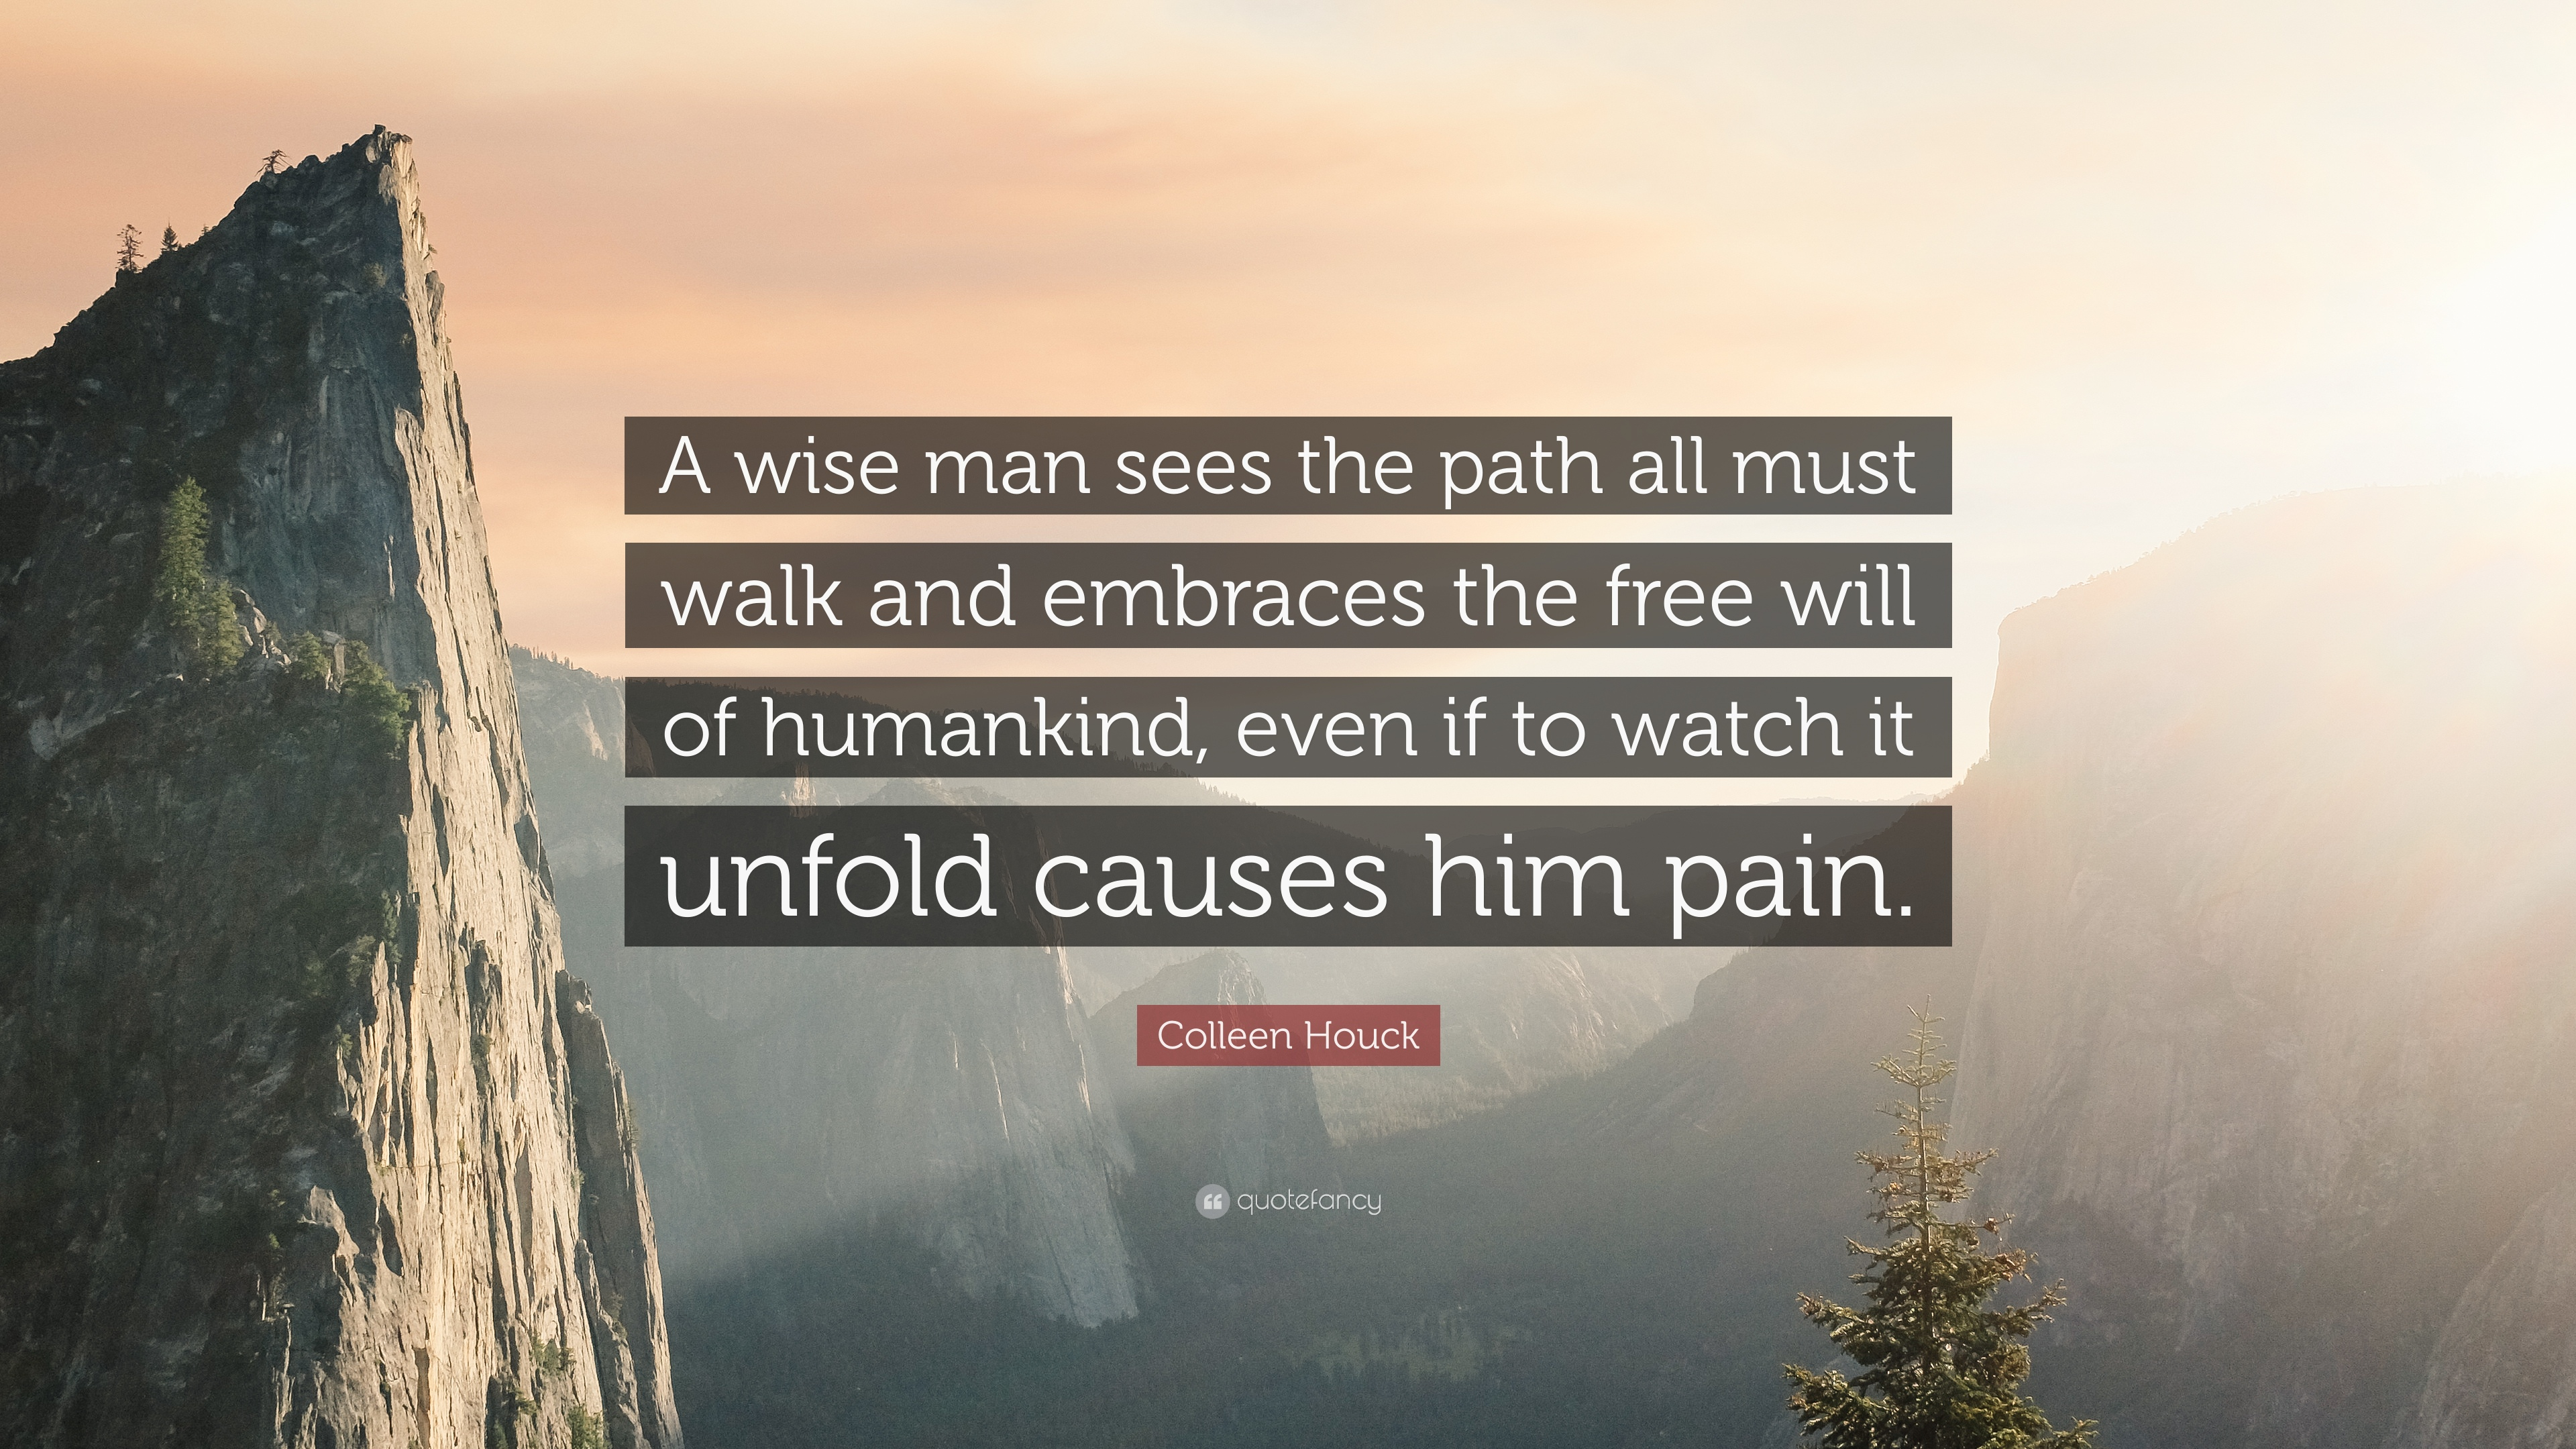 Genial Colleen Houck Quote: U201cA Wise Man Sees The Path All Must Walk And Embraces